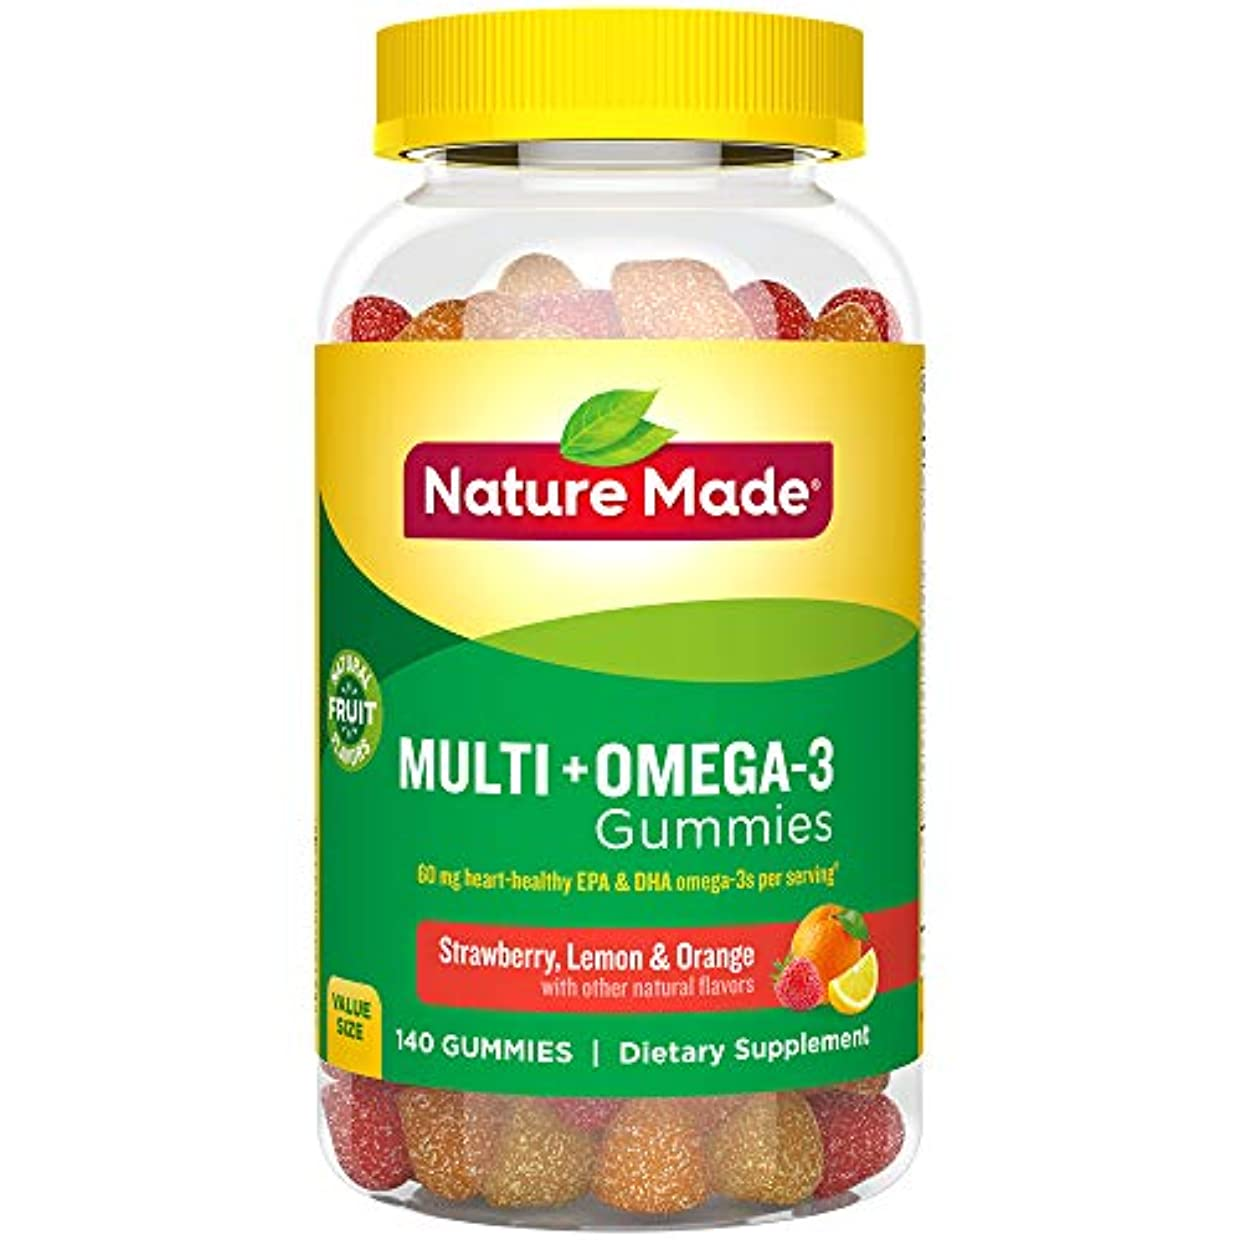 接続詞パトロールへこみNature Made Multi + Omega-3 Adult Gummies (60 mg of DHA & EPA per serving),140粒